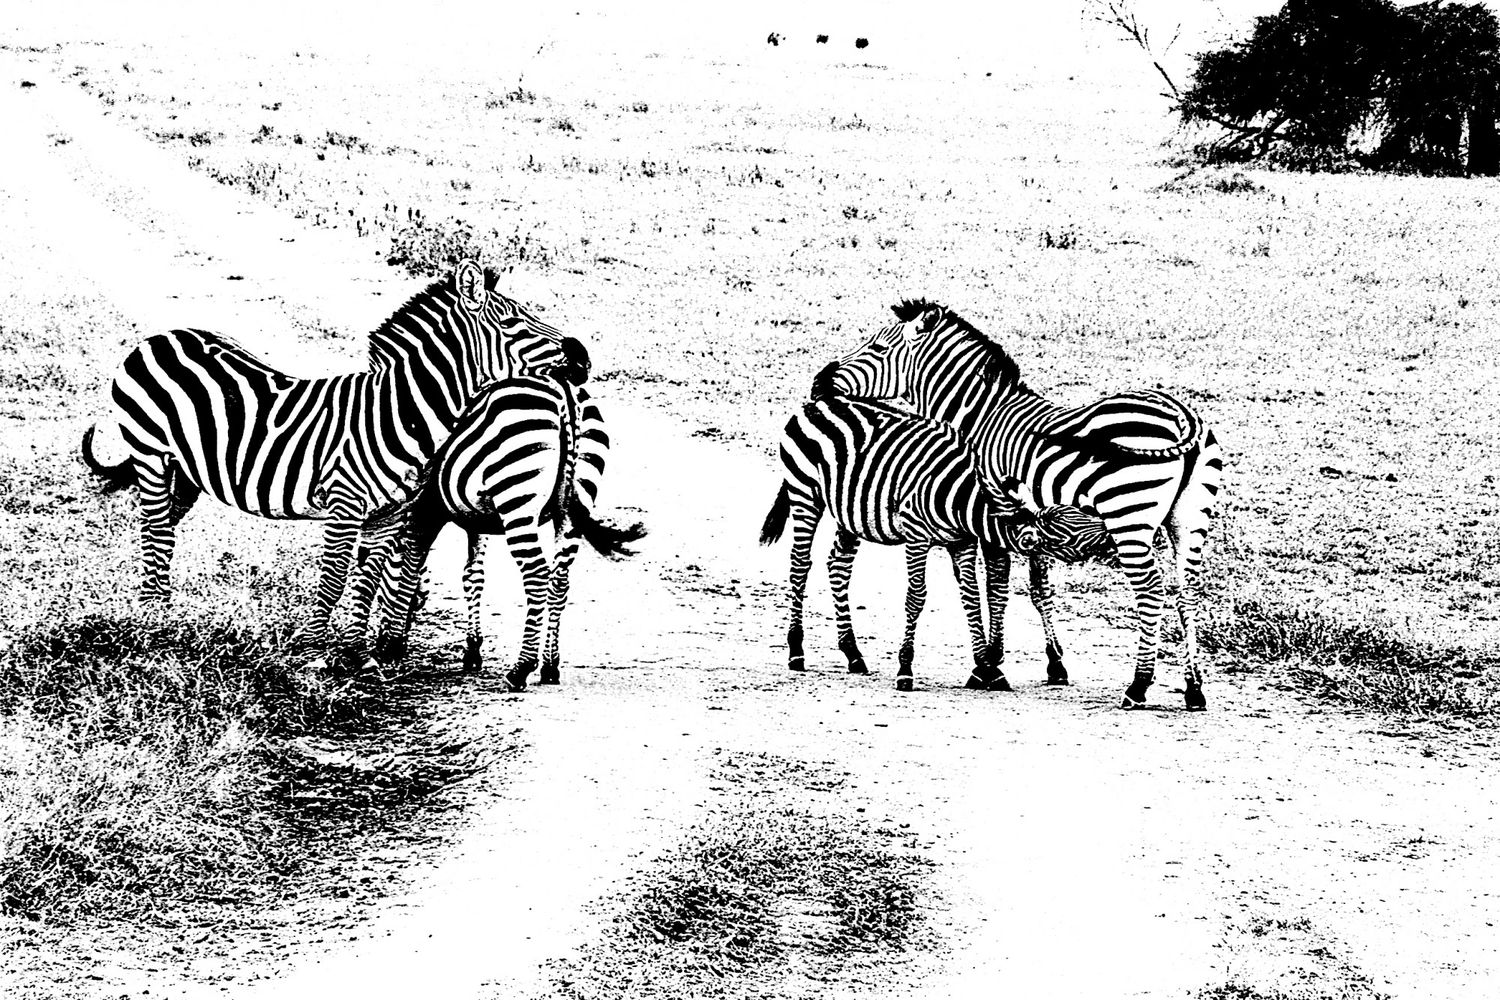 Zebra - 4, Serengeti 2016   Edition 1 of 2